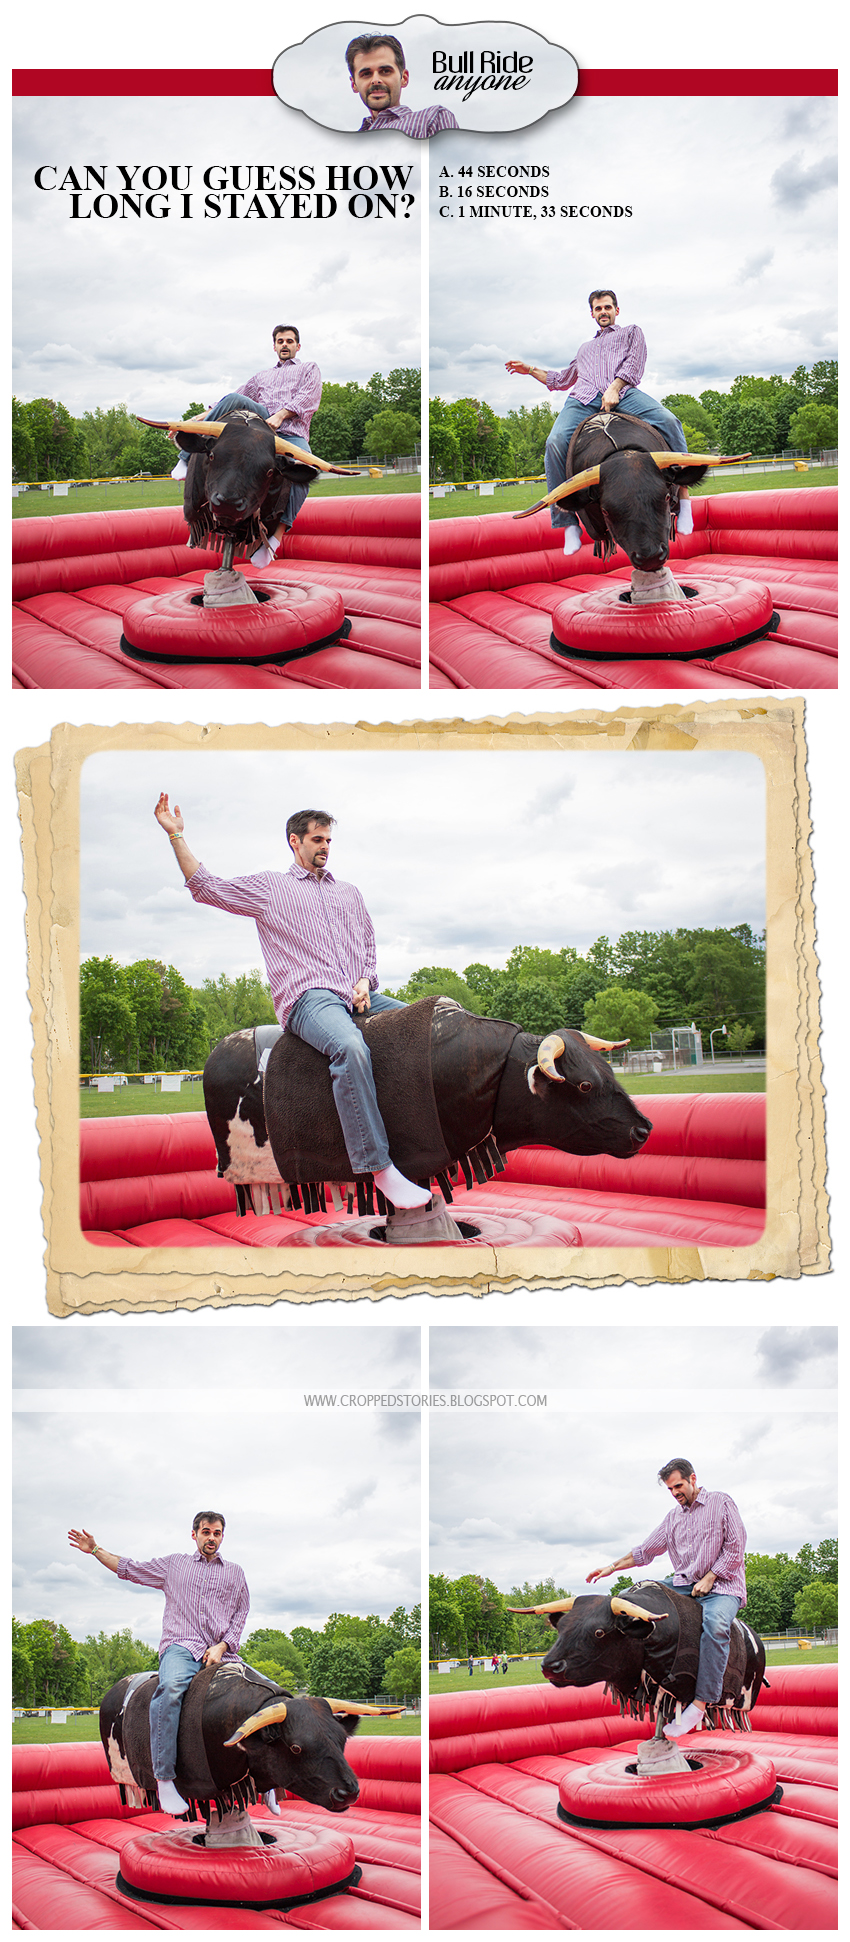 MAN ON BULL RIDE